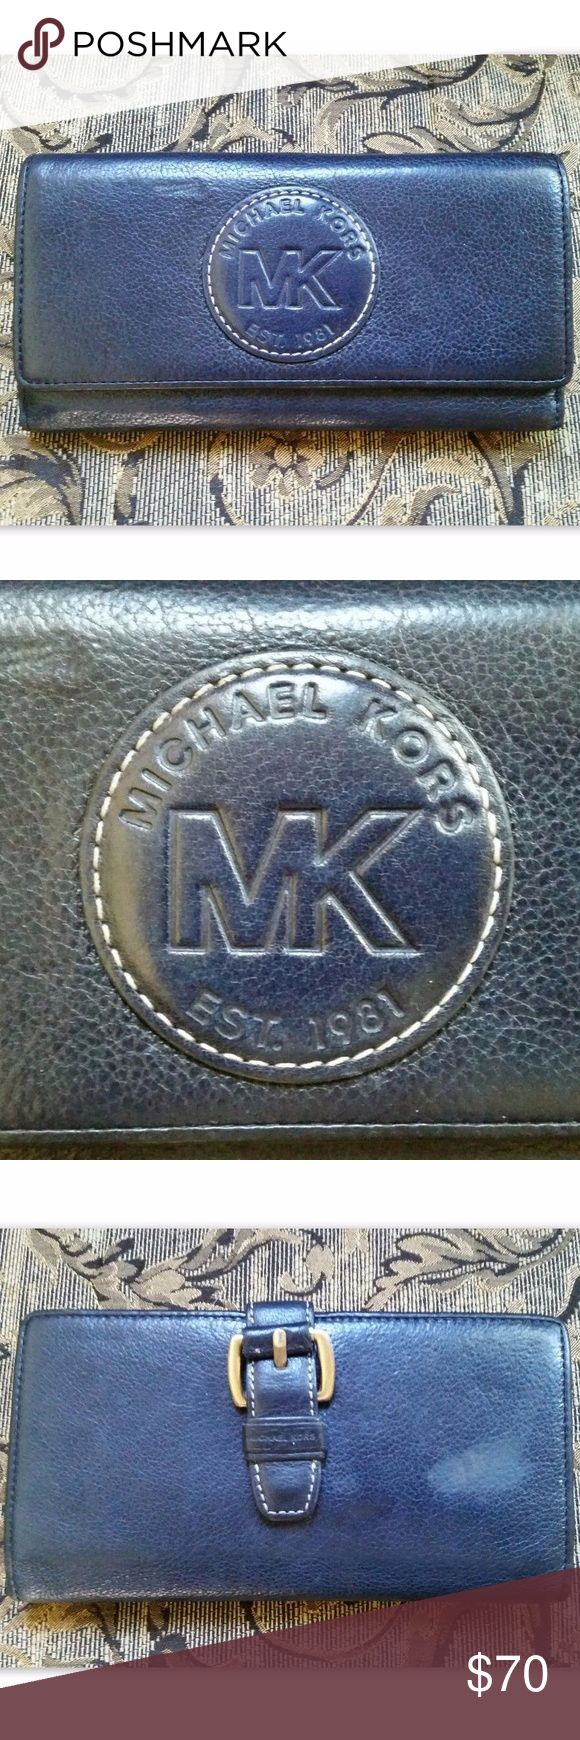 MICHAEL KORS Wallet Continental Blue Clutch 100% Authentic MICHAEL KORS Wallet Mainline Vintage Clutch Very good vintage condition - some areas of leather show surface rubbing (mainly on back), tons of use left. Very clean. See photos. Elegant continental flap wallet in dark navy blue leather. Silver tone hardware and buckle accent at back. Large MK logo front. Snap closure. Two large accordion style bill sections with zippered pocket divider. Backside opens to reveal ID holder, tons of card…